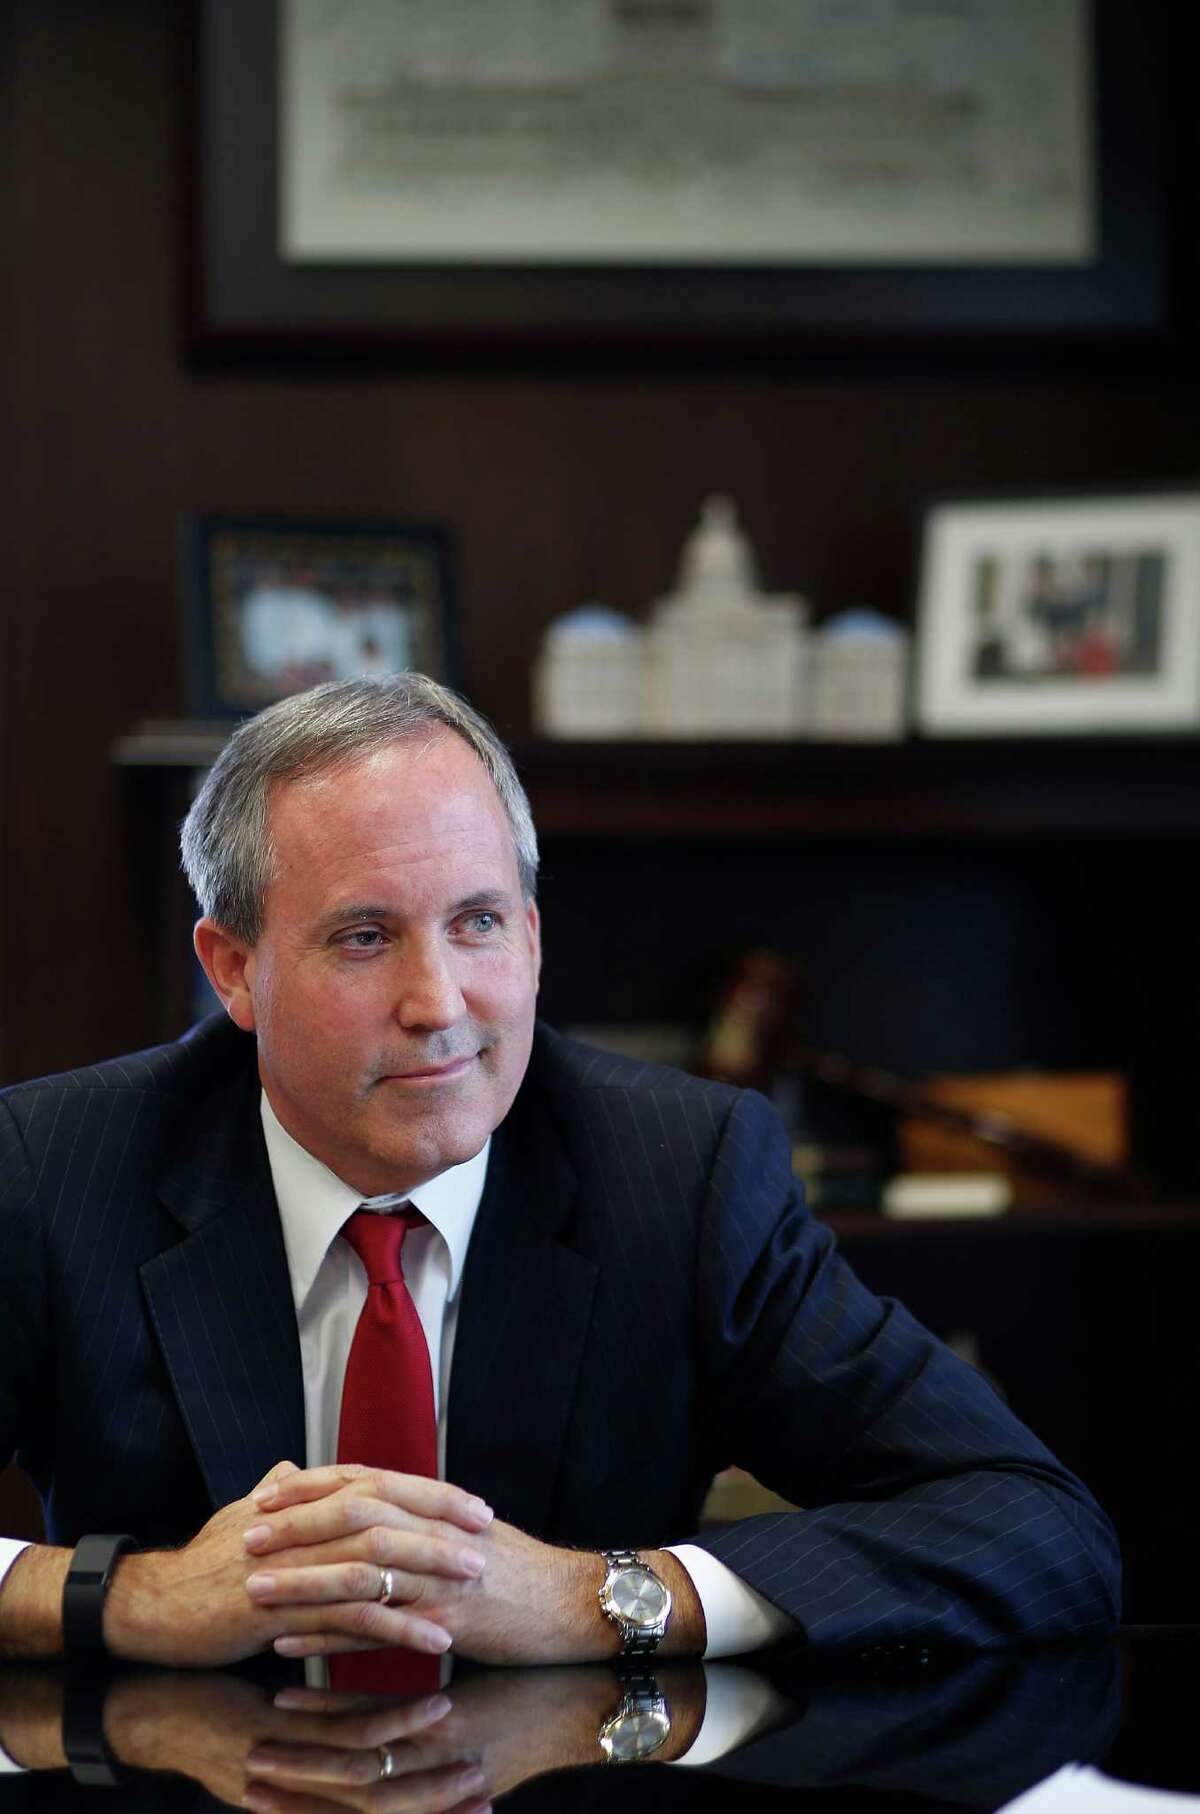 Texas Attorney General Ken Paxton is interviewed inside his Austin office. Twenty-one states including Texas sued the U.S. Department of Labor on Tuesday, seeking to stop the Obama administration's implementation of new overtime rules set to go into effect in December.